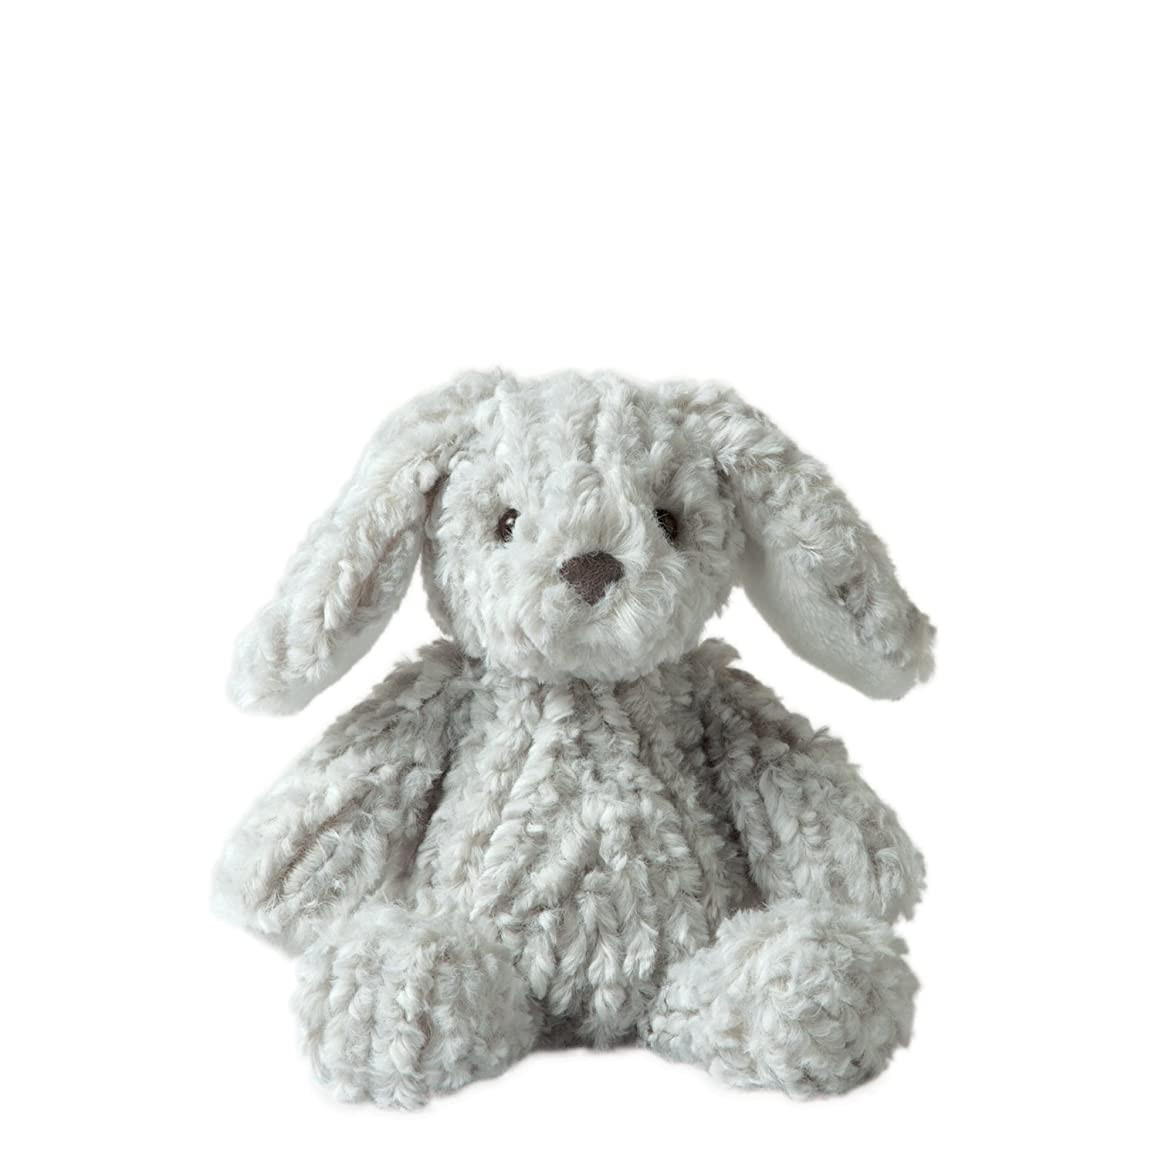 Manhattan Toy Adorables Theo Bunny Stuffed Animal, 8